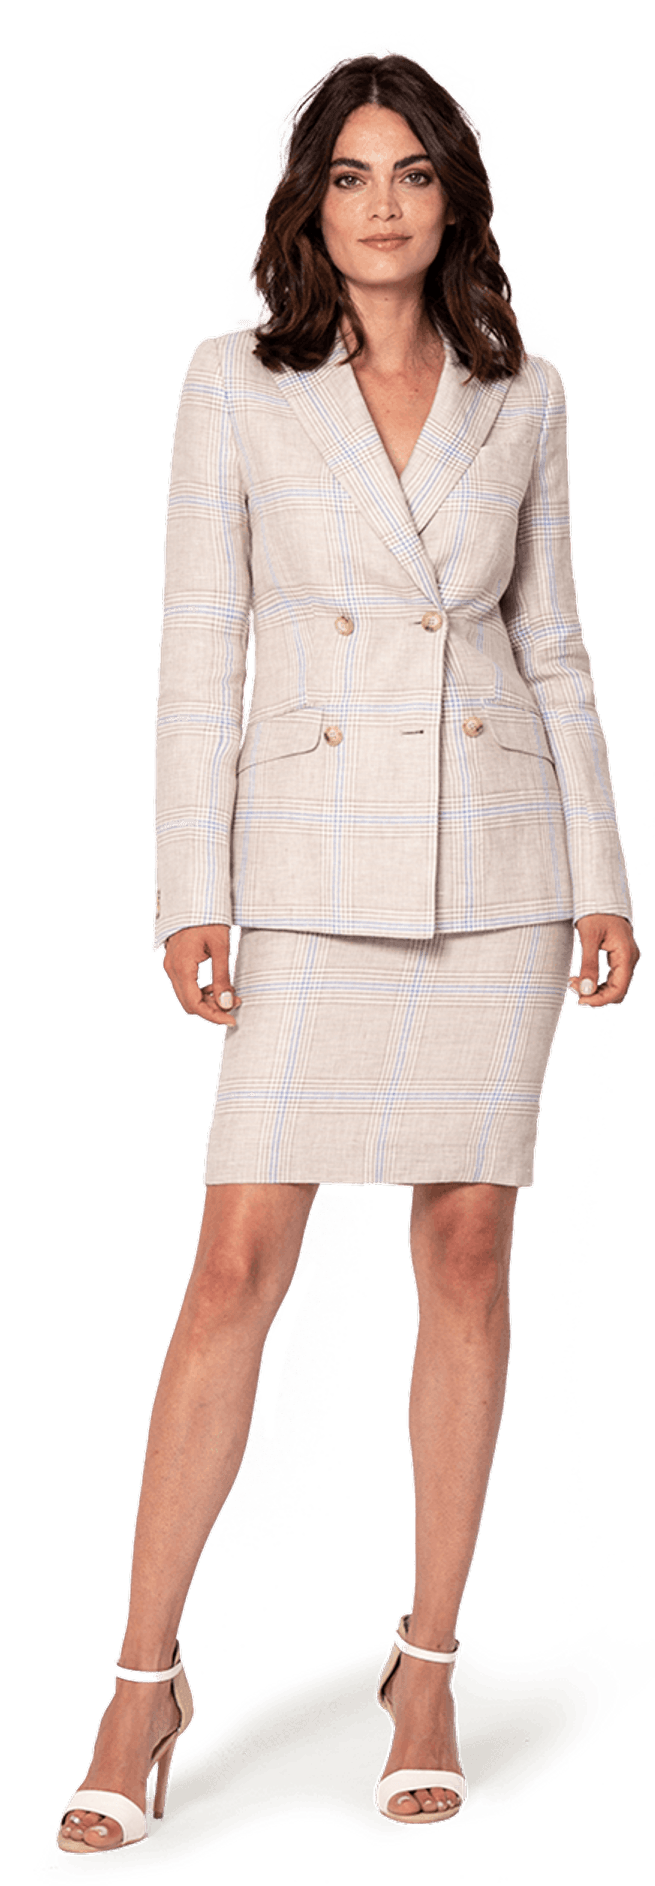 f75adcb418086 Women's Skirt Suits - Made to Measure - Sumissura